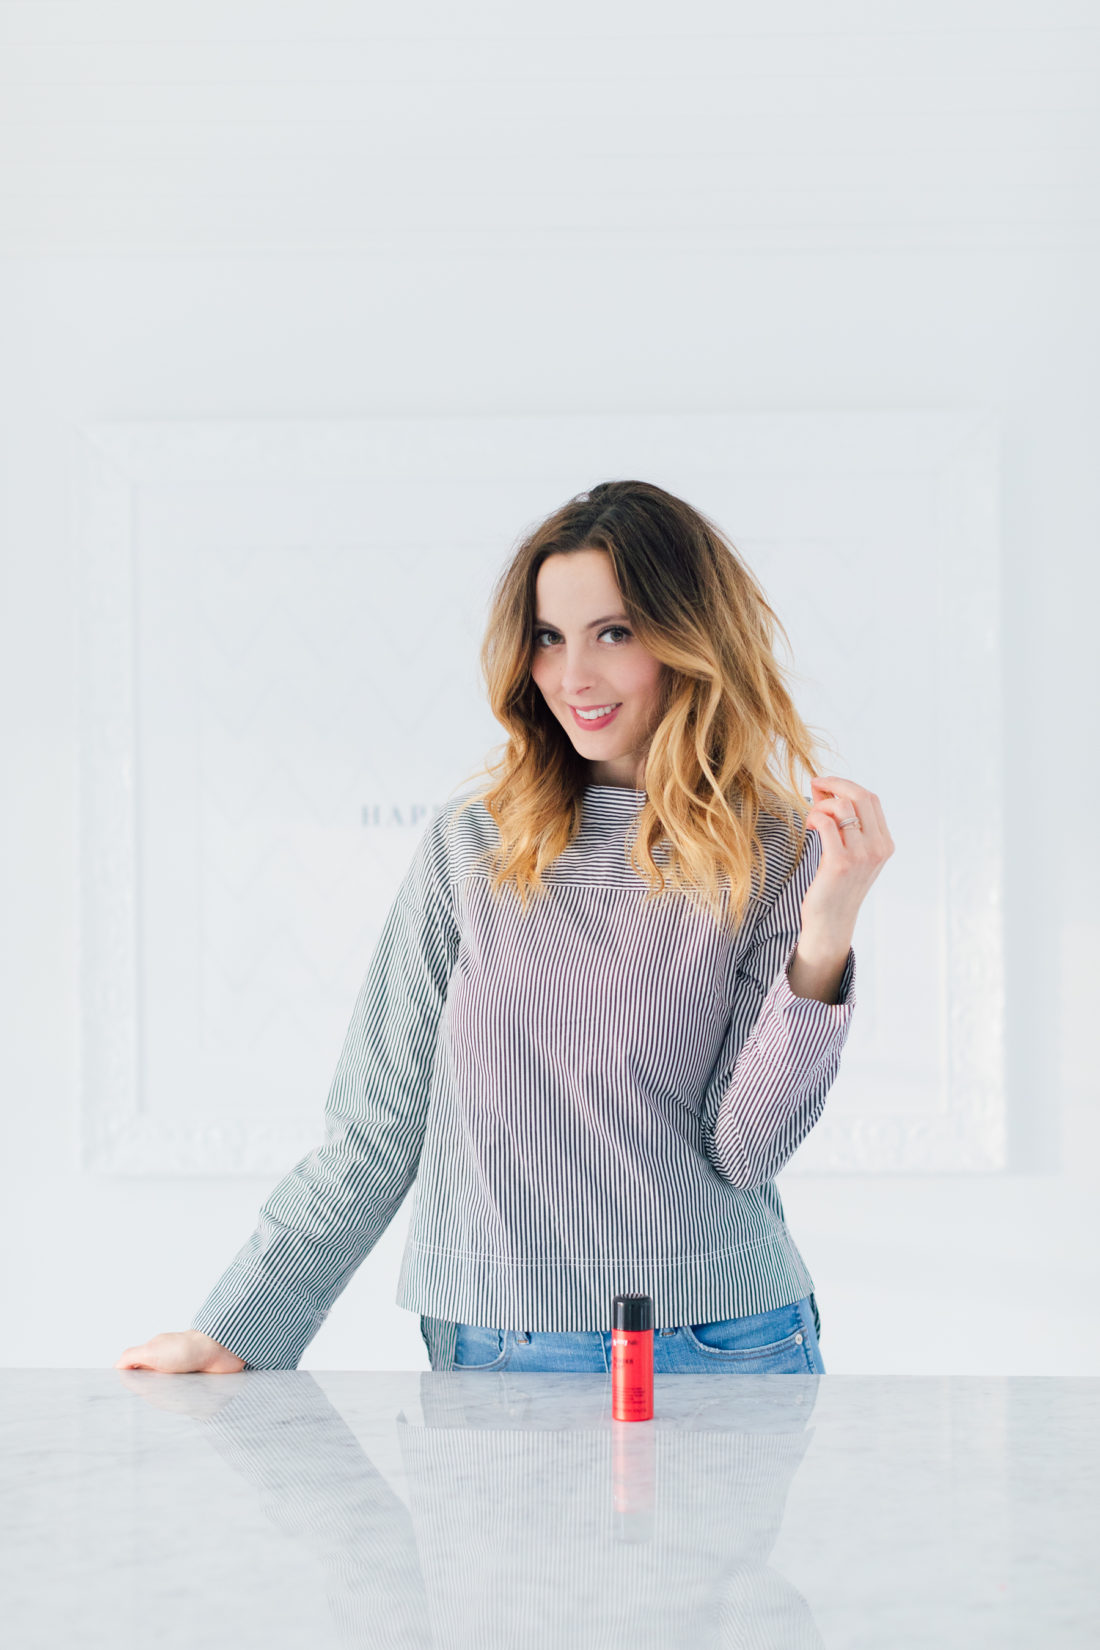 Eva Amurri Martino creates full, tousled hair with Big Sexy Hair Powder Play as part of her monthly obsessions roundup